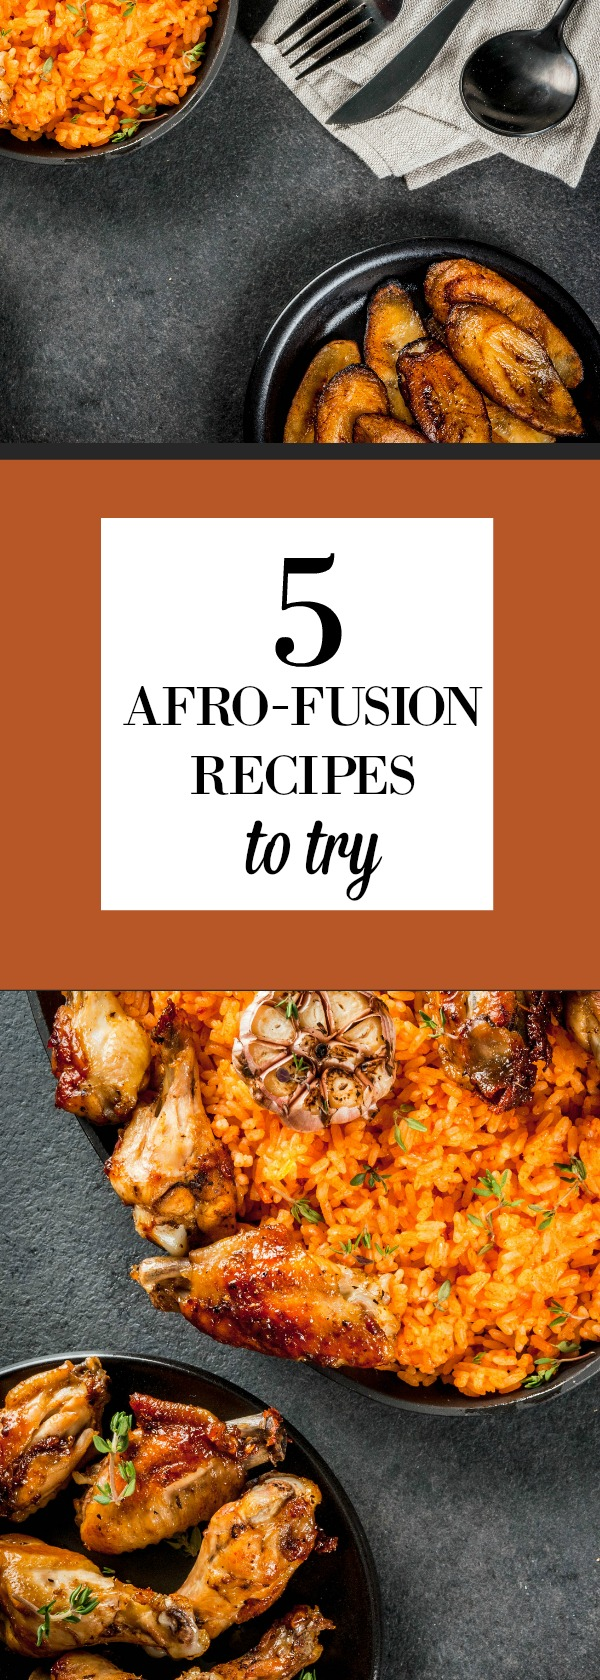 Afro-fusion cooking: Exploring the art of combining the traditional African cuisine with elements from other cultures to create Afro-fusion cuisine + 5 Afro-fusion recipes to try